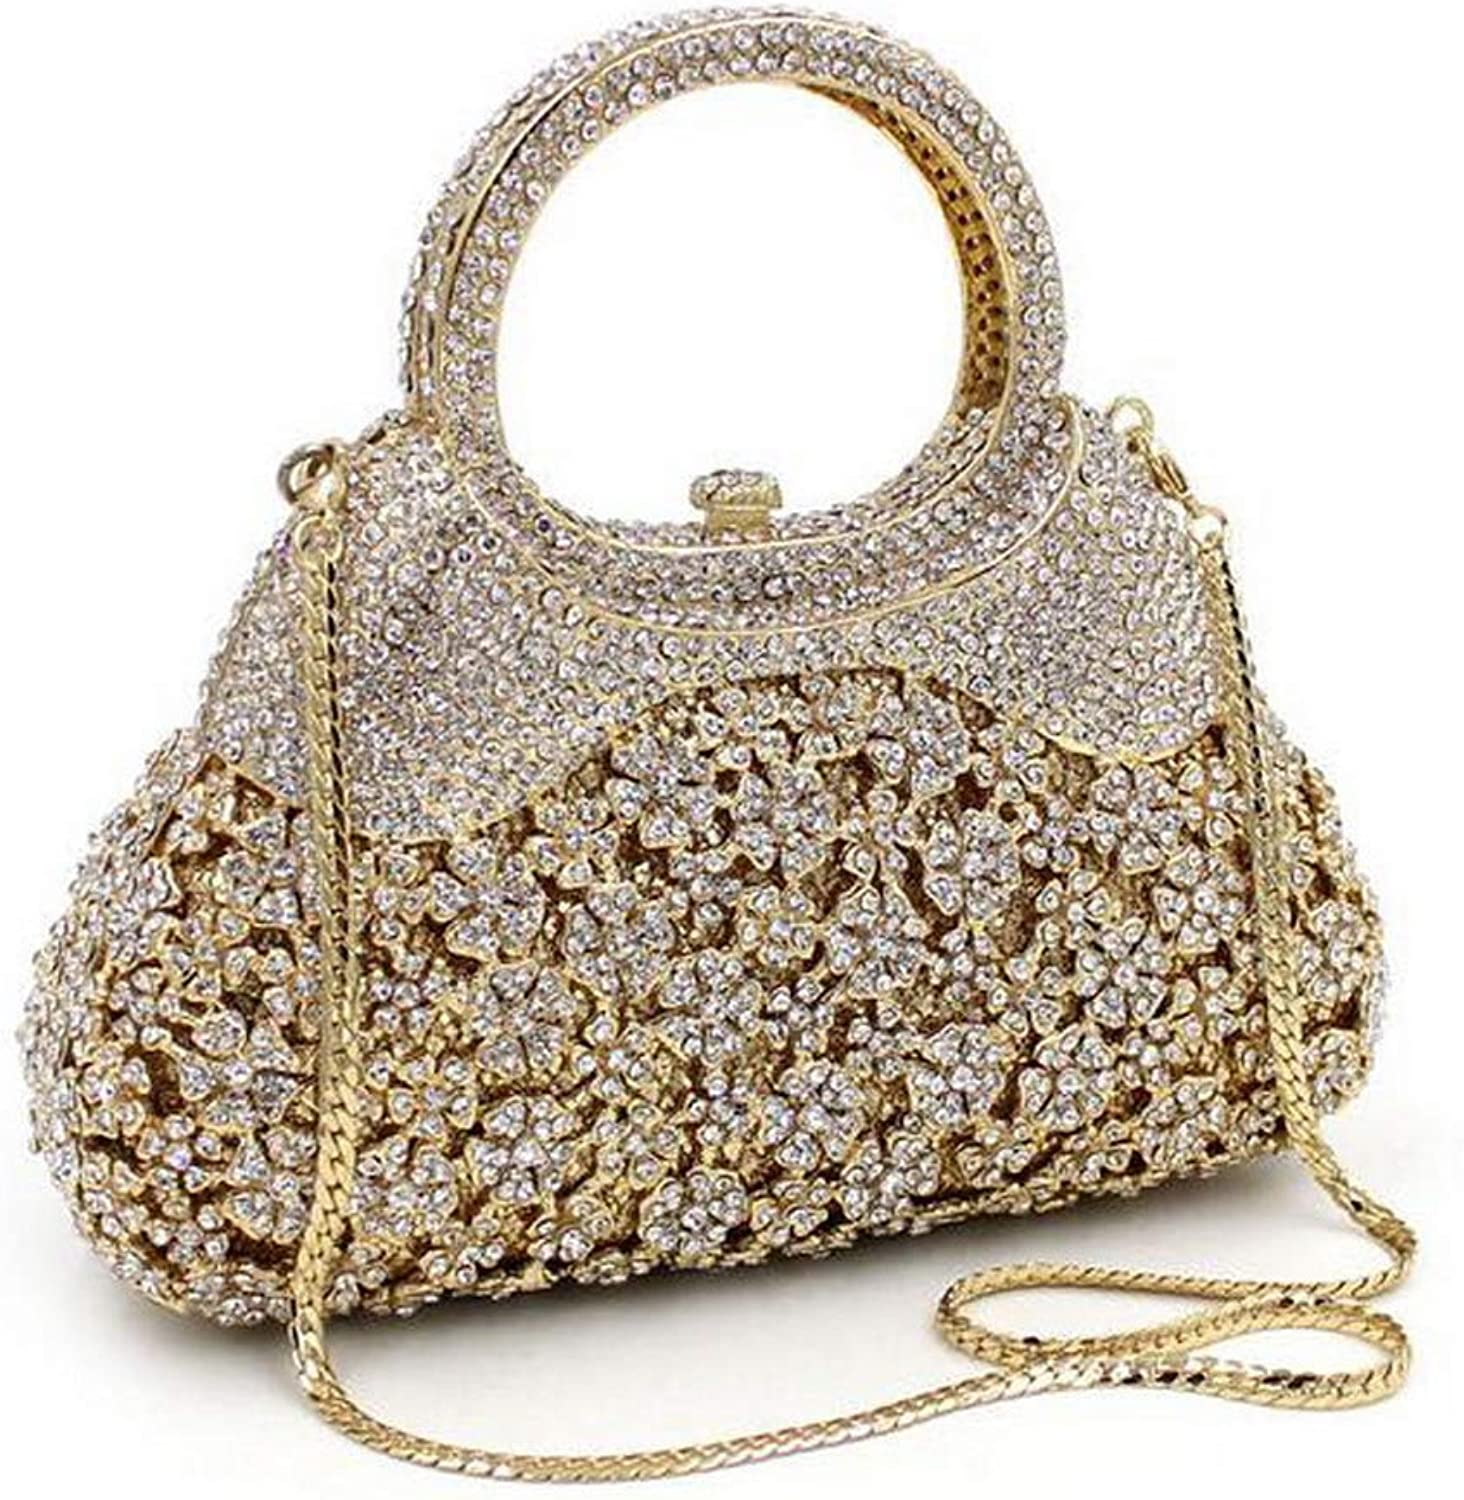 Classic Floral Evening Bag Sparkling Rhinestone Lady Clutch Purse Diamond Party Shoulder Bag for Wedding